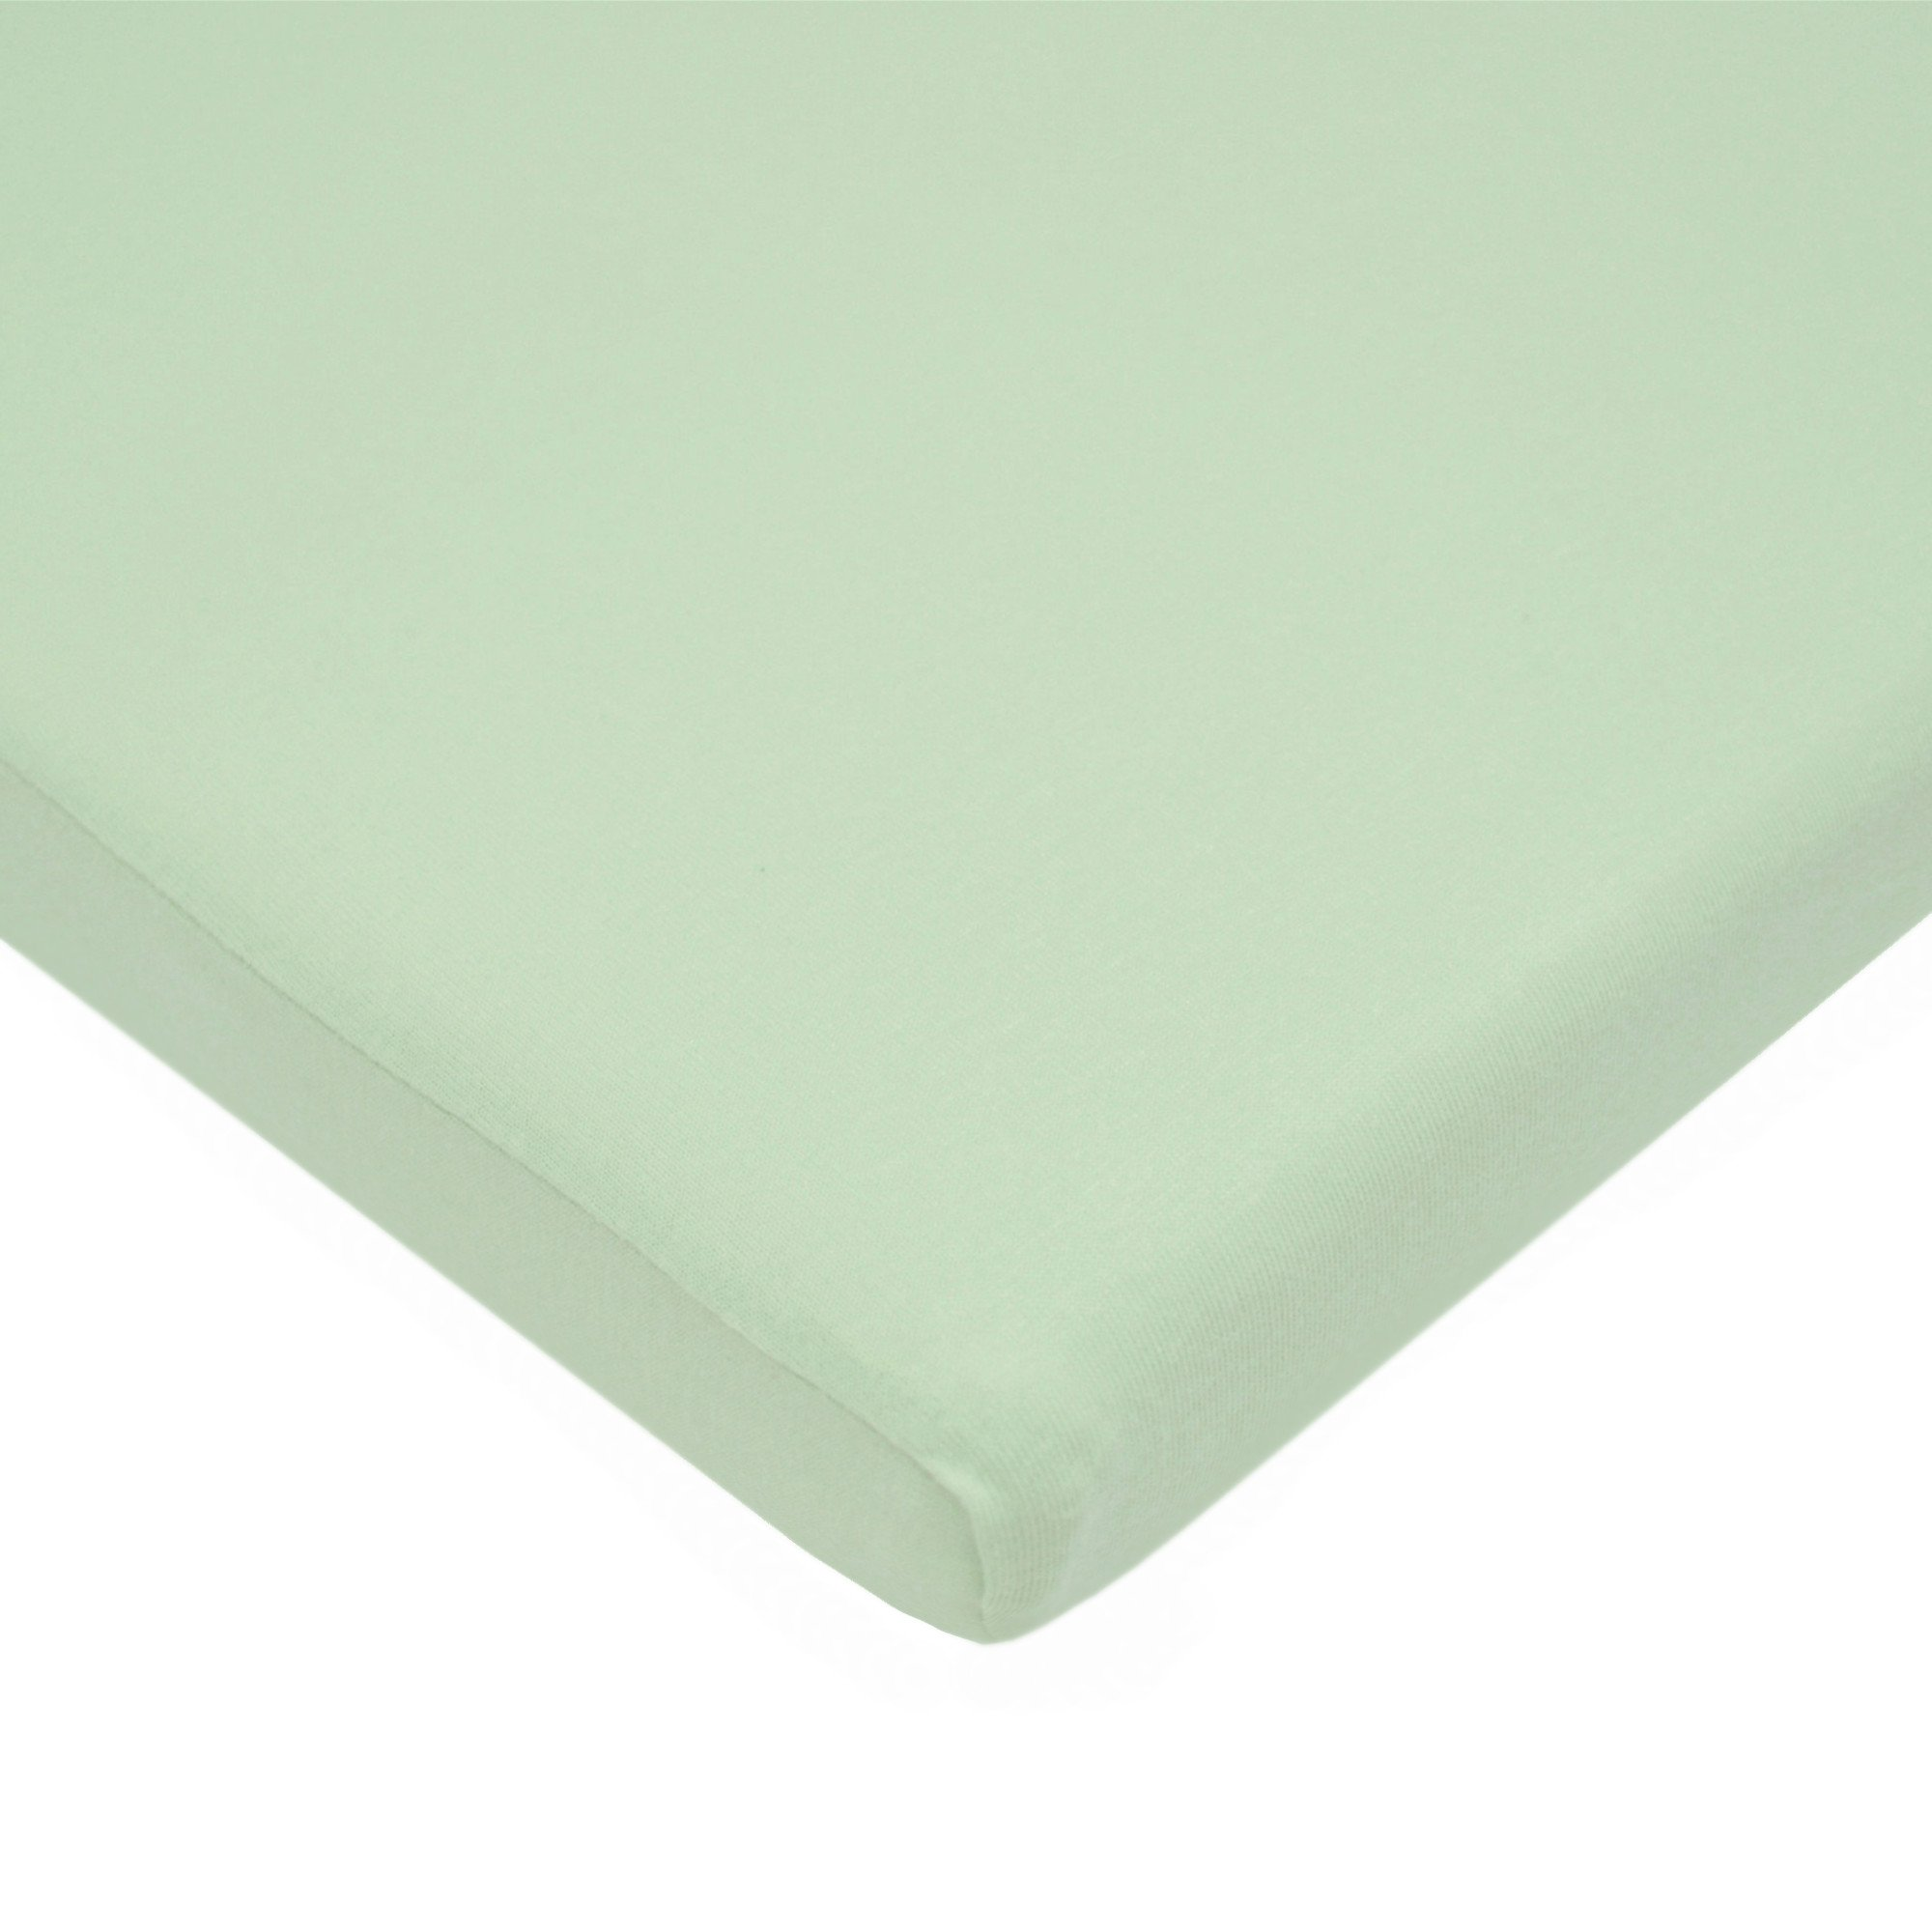 American Baby Company 100% Natural Cotton Supreme Jersey Knit Fitted Cradle Sheet, Celery, Soft Breathable, for Boys and Girls by American Baby Company